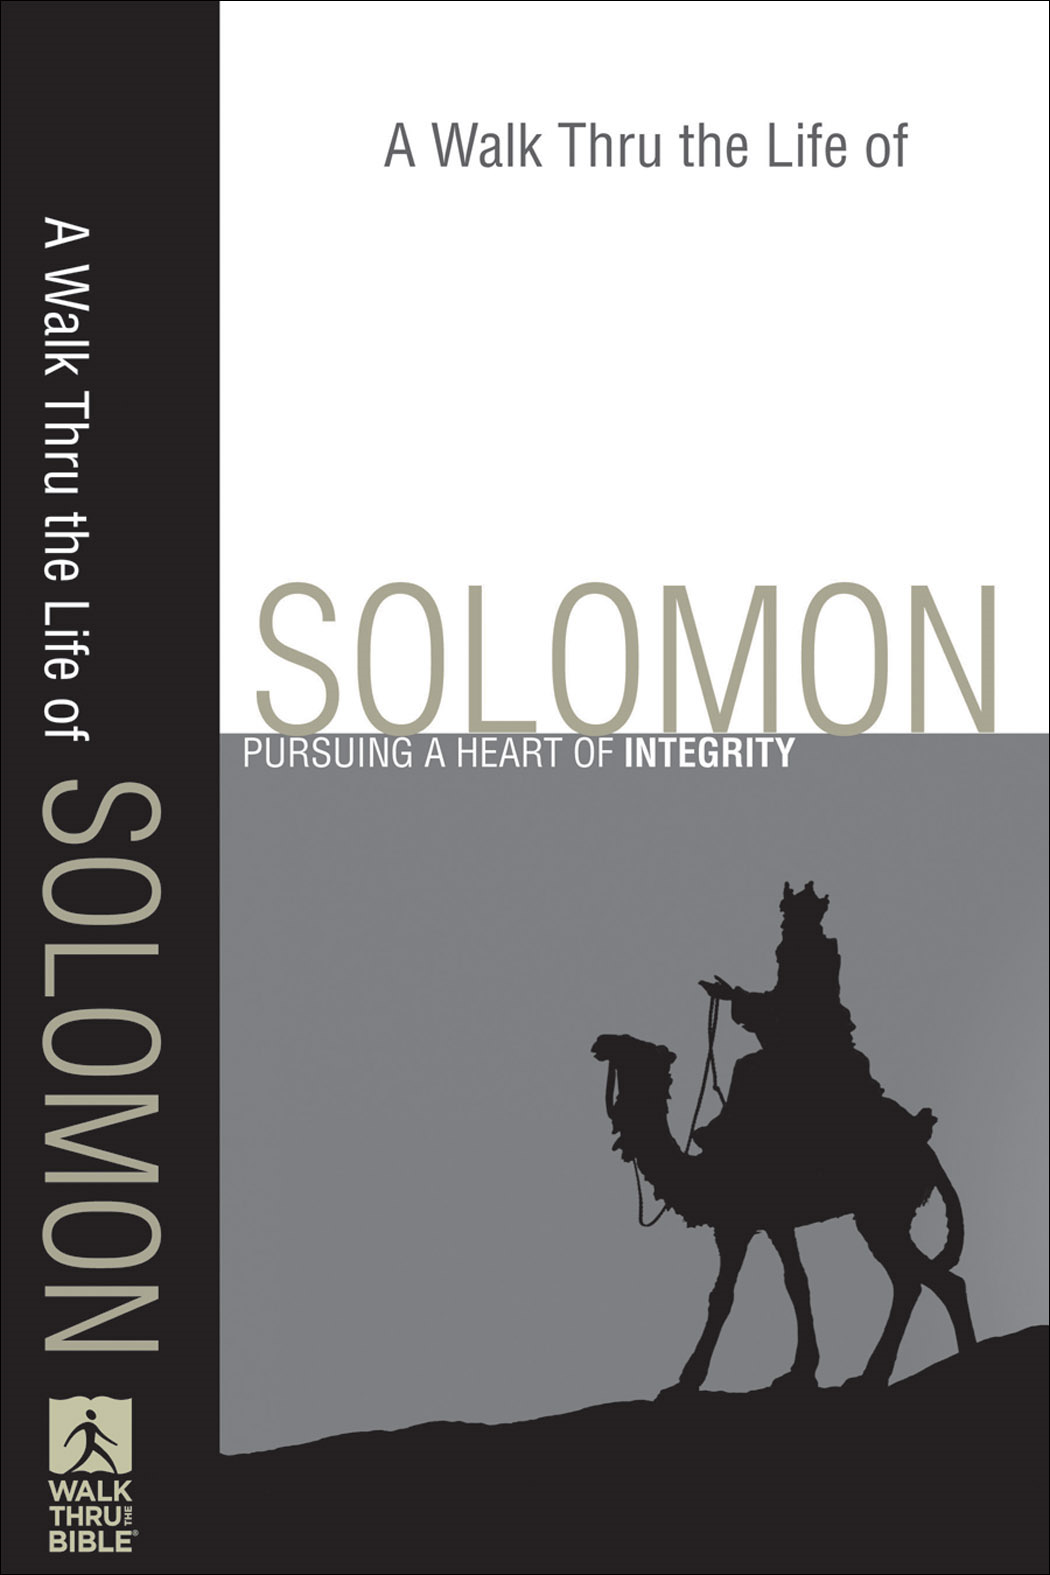 Walk Thru the Life of Solomon, A (Walk Thru the Bible Discussion Guides)